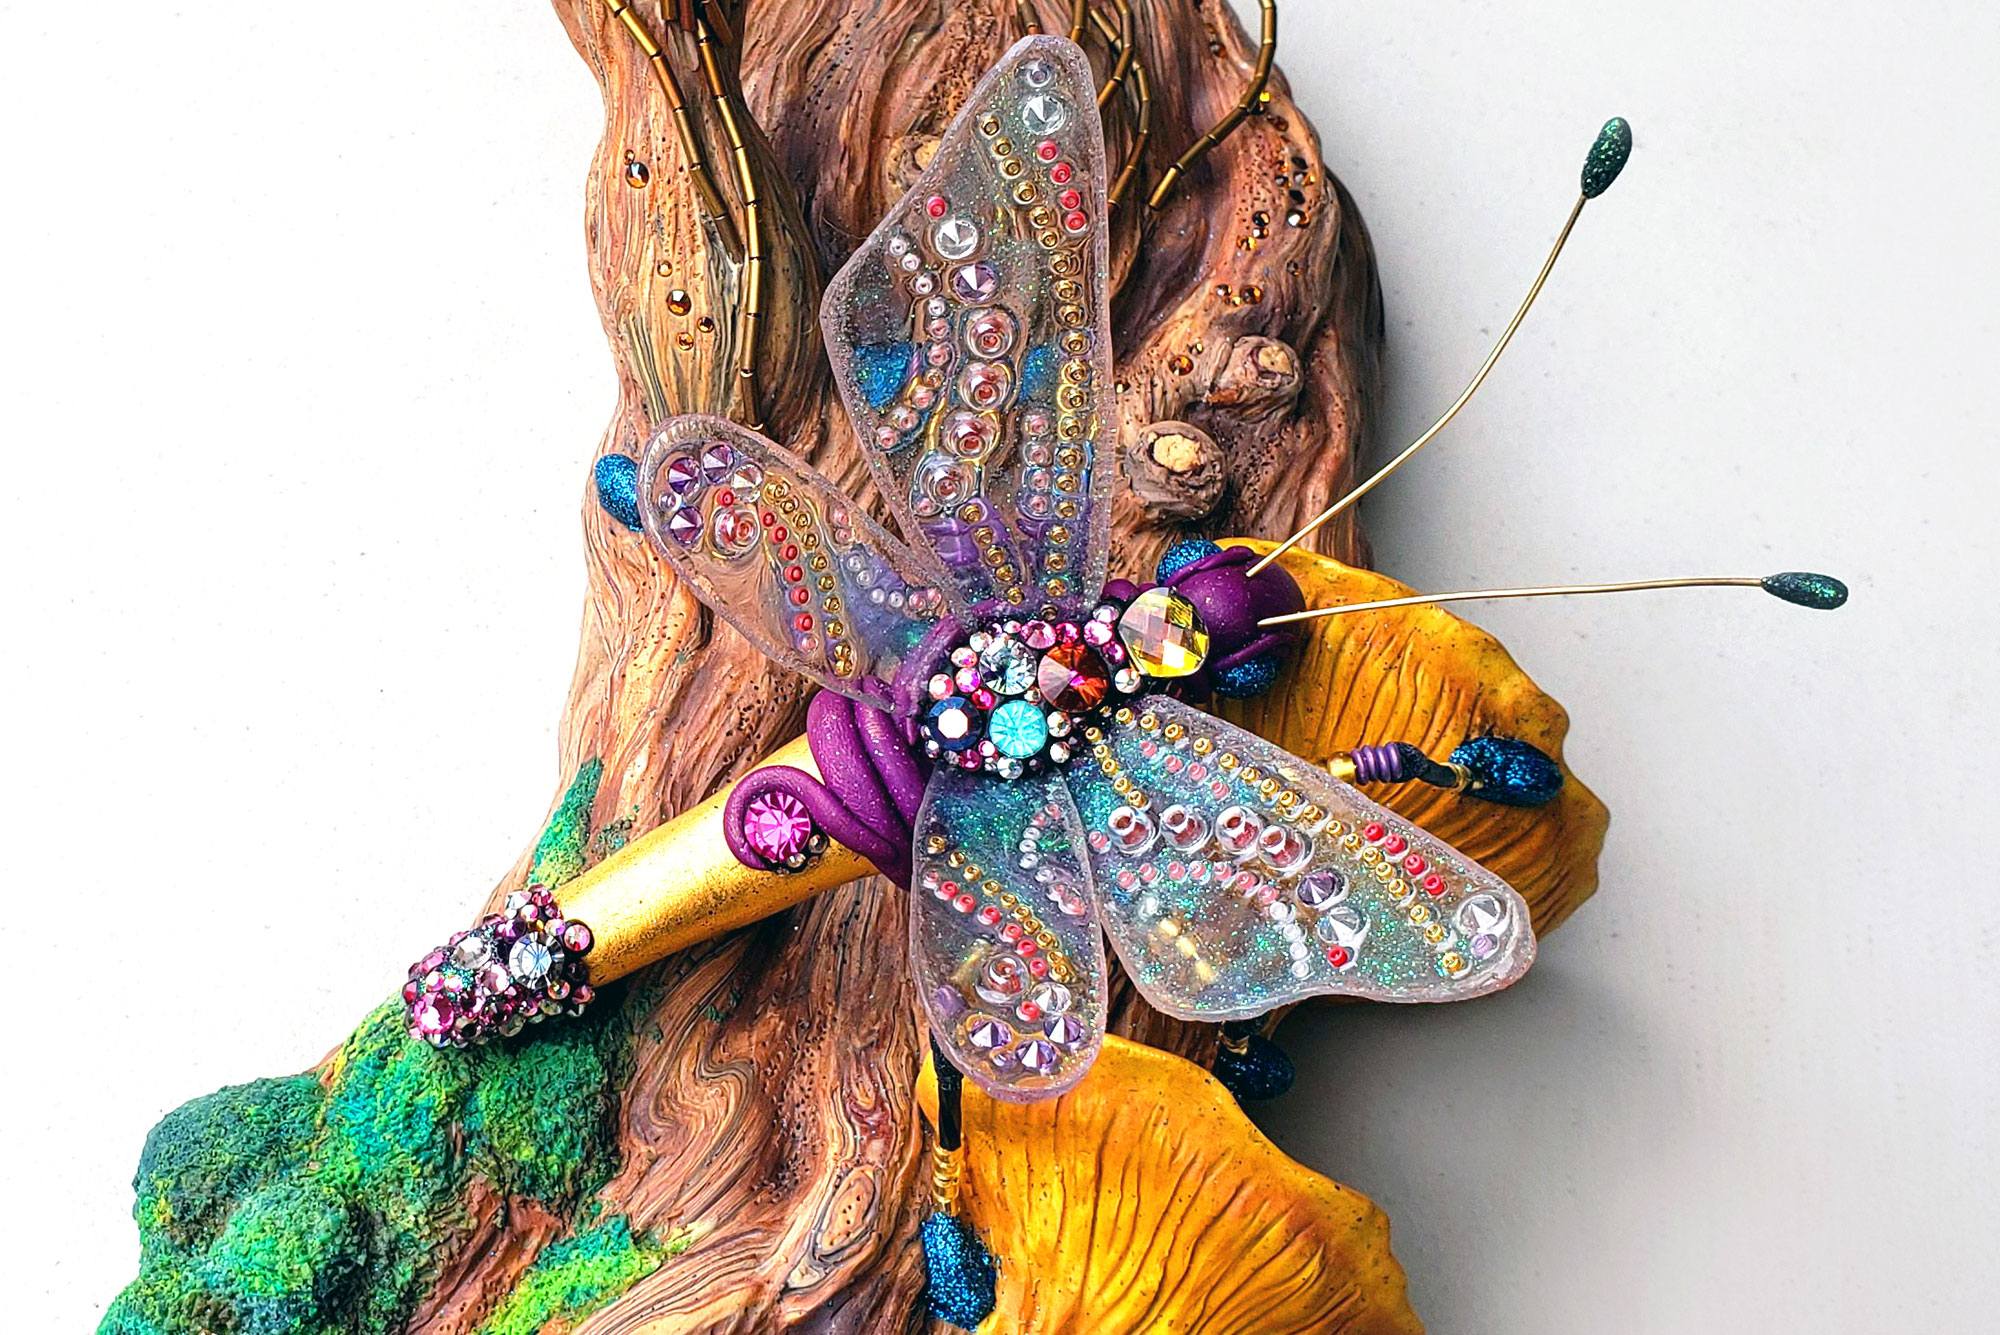 Sculpting a Mixed-Media Insect